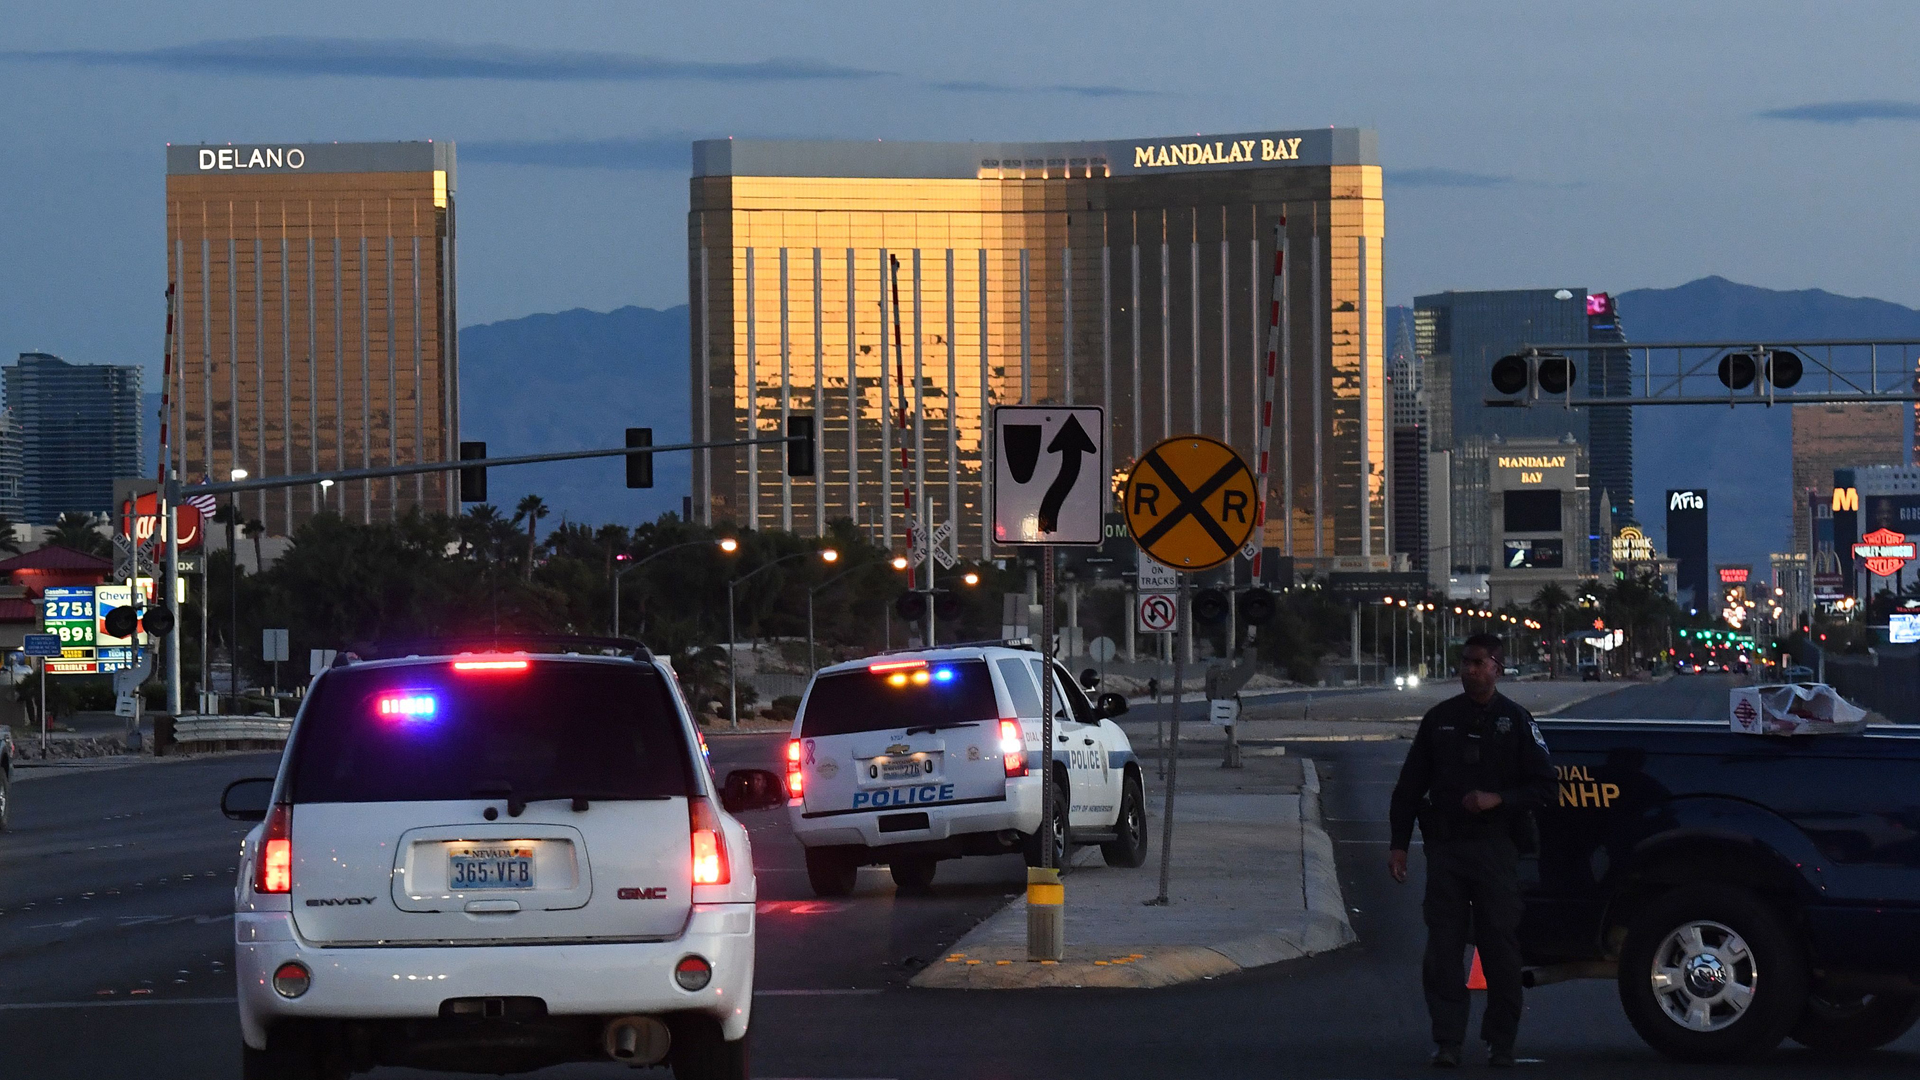 Police form a perimeter around the road leading to the Mandalay Hotel (background) after a gunman killed at least 50 people and wounded more than 400 others when he opened fire on a country music concert in Las Vegas, Nevada on October 2, 2017. (Credit: MARK RALSTON/AFP/Getty Images)